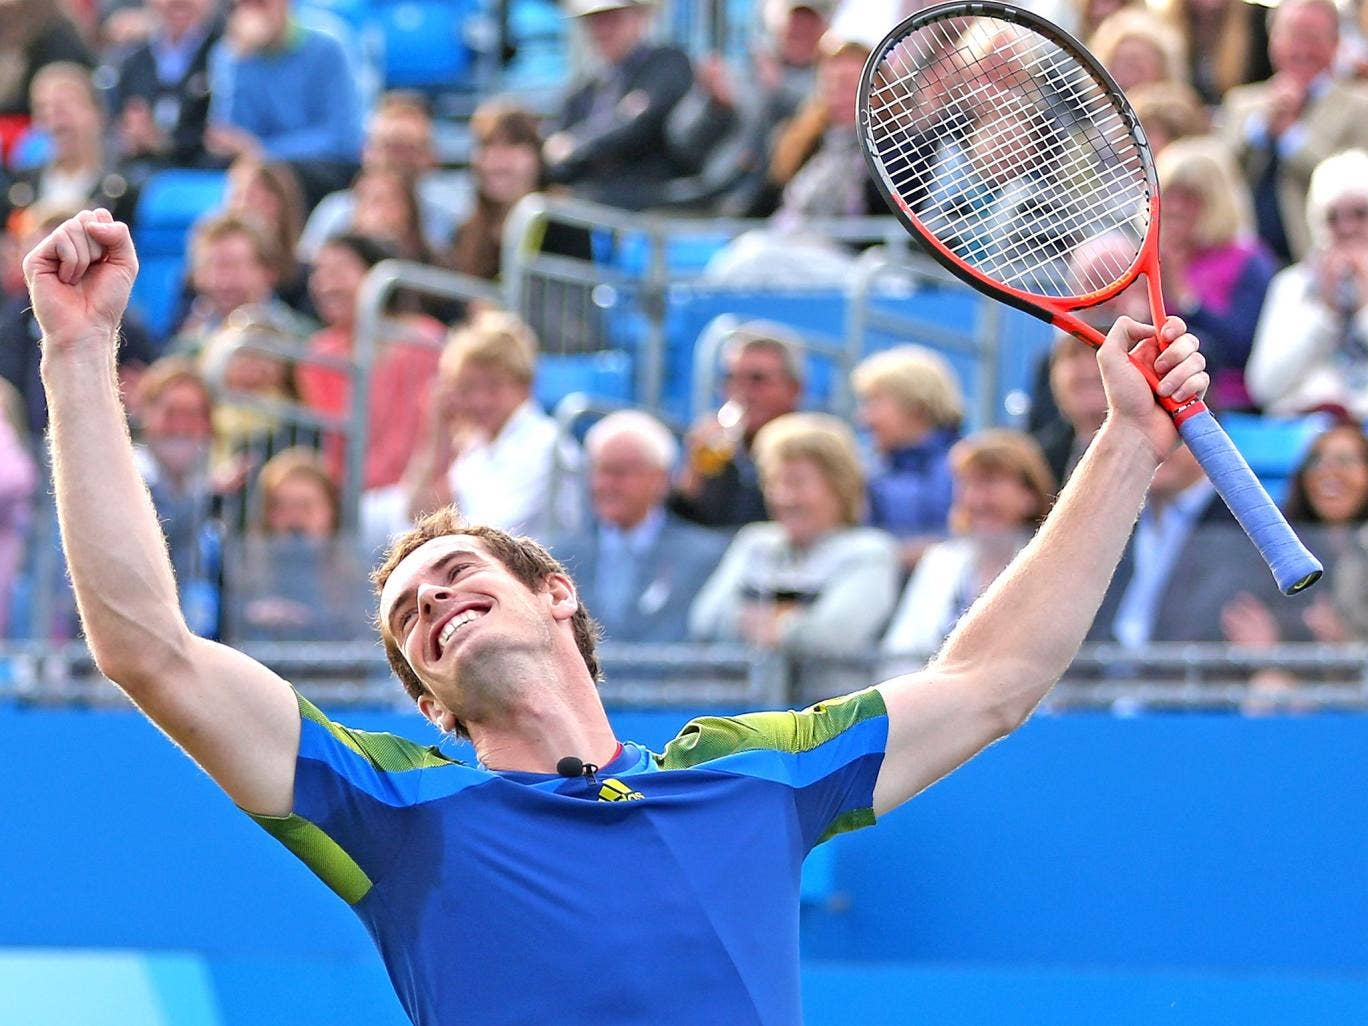 Murray is hoping to avenge his defeat in last year's final